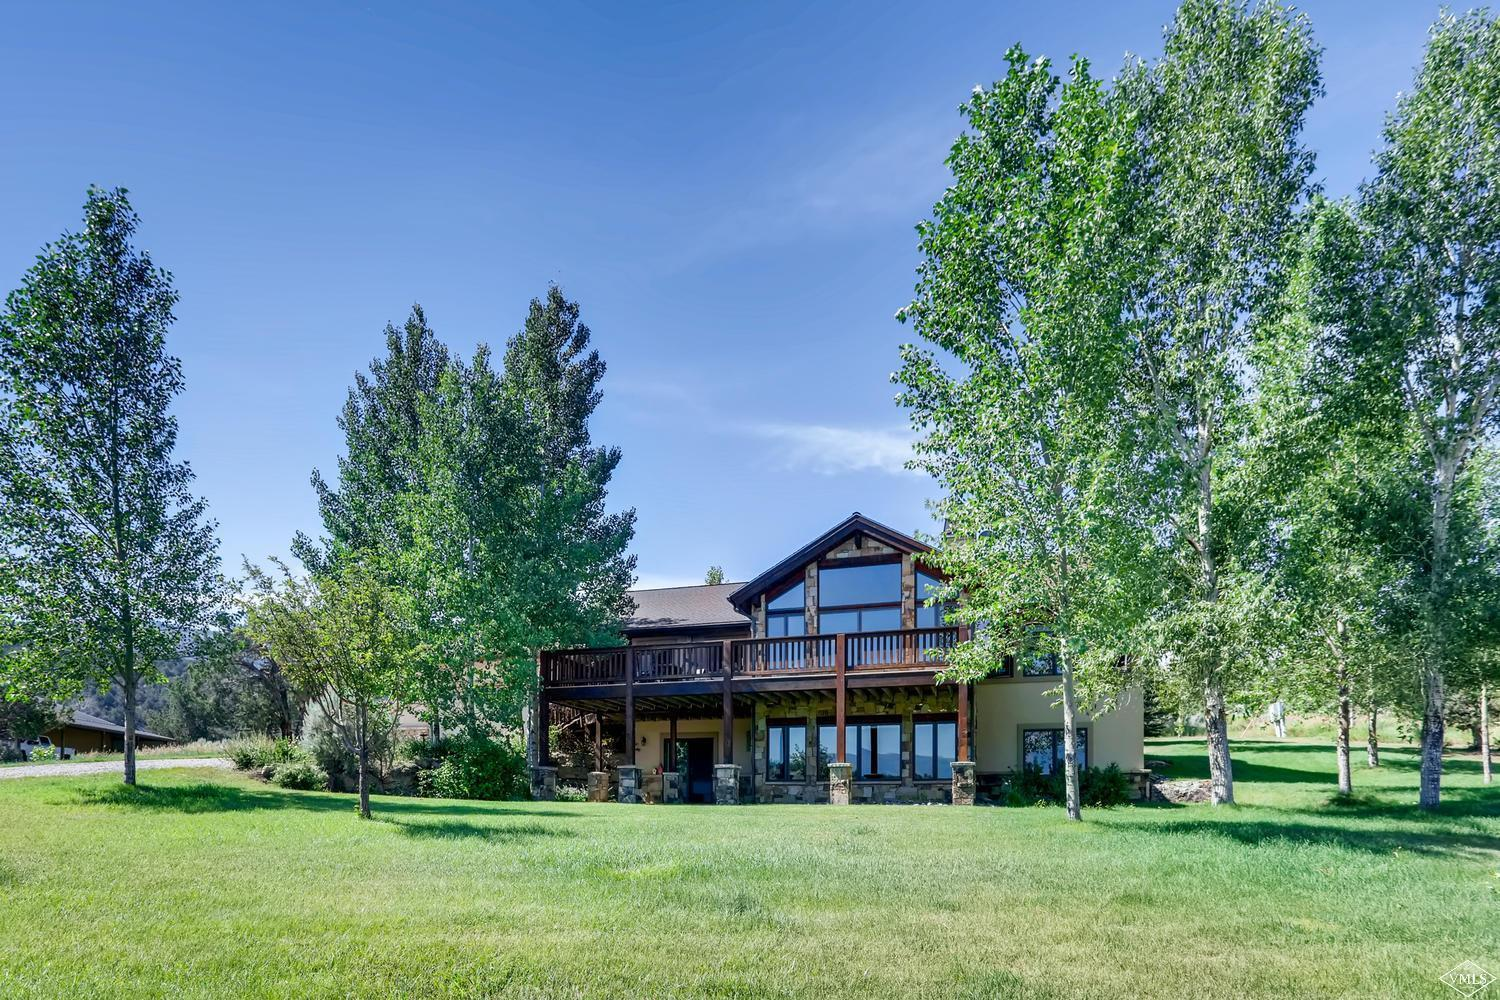 Rare offering with privacy and panoramic views with direct BLM and Forest access! Custom home on an exceptional 12-acre property with flat, fenced irrigated pastures. Features of the 4- bedroom, 3.5 bath home include high end finishes, an open floor plan, main floor master, walk out lower level, 3 car garage, large heated shop and deeded water rights. Conveniences of town are less than 5 minutes away, though you would never guess that with the privacy and peace this home provides.; Over 3 Car Garage; Live Water